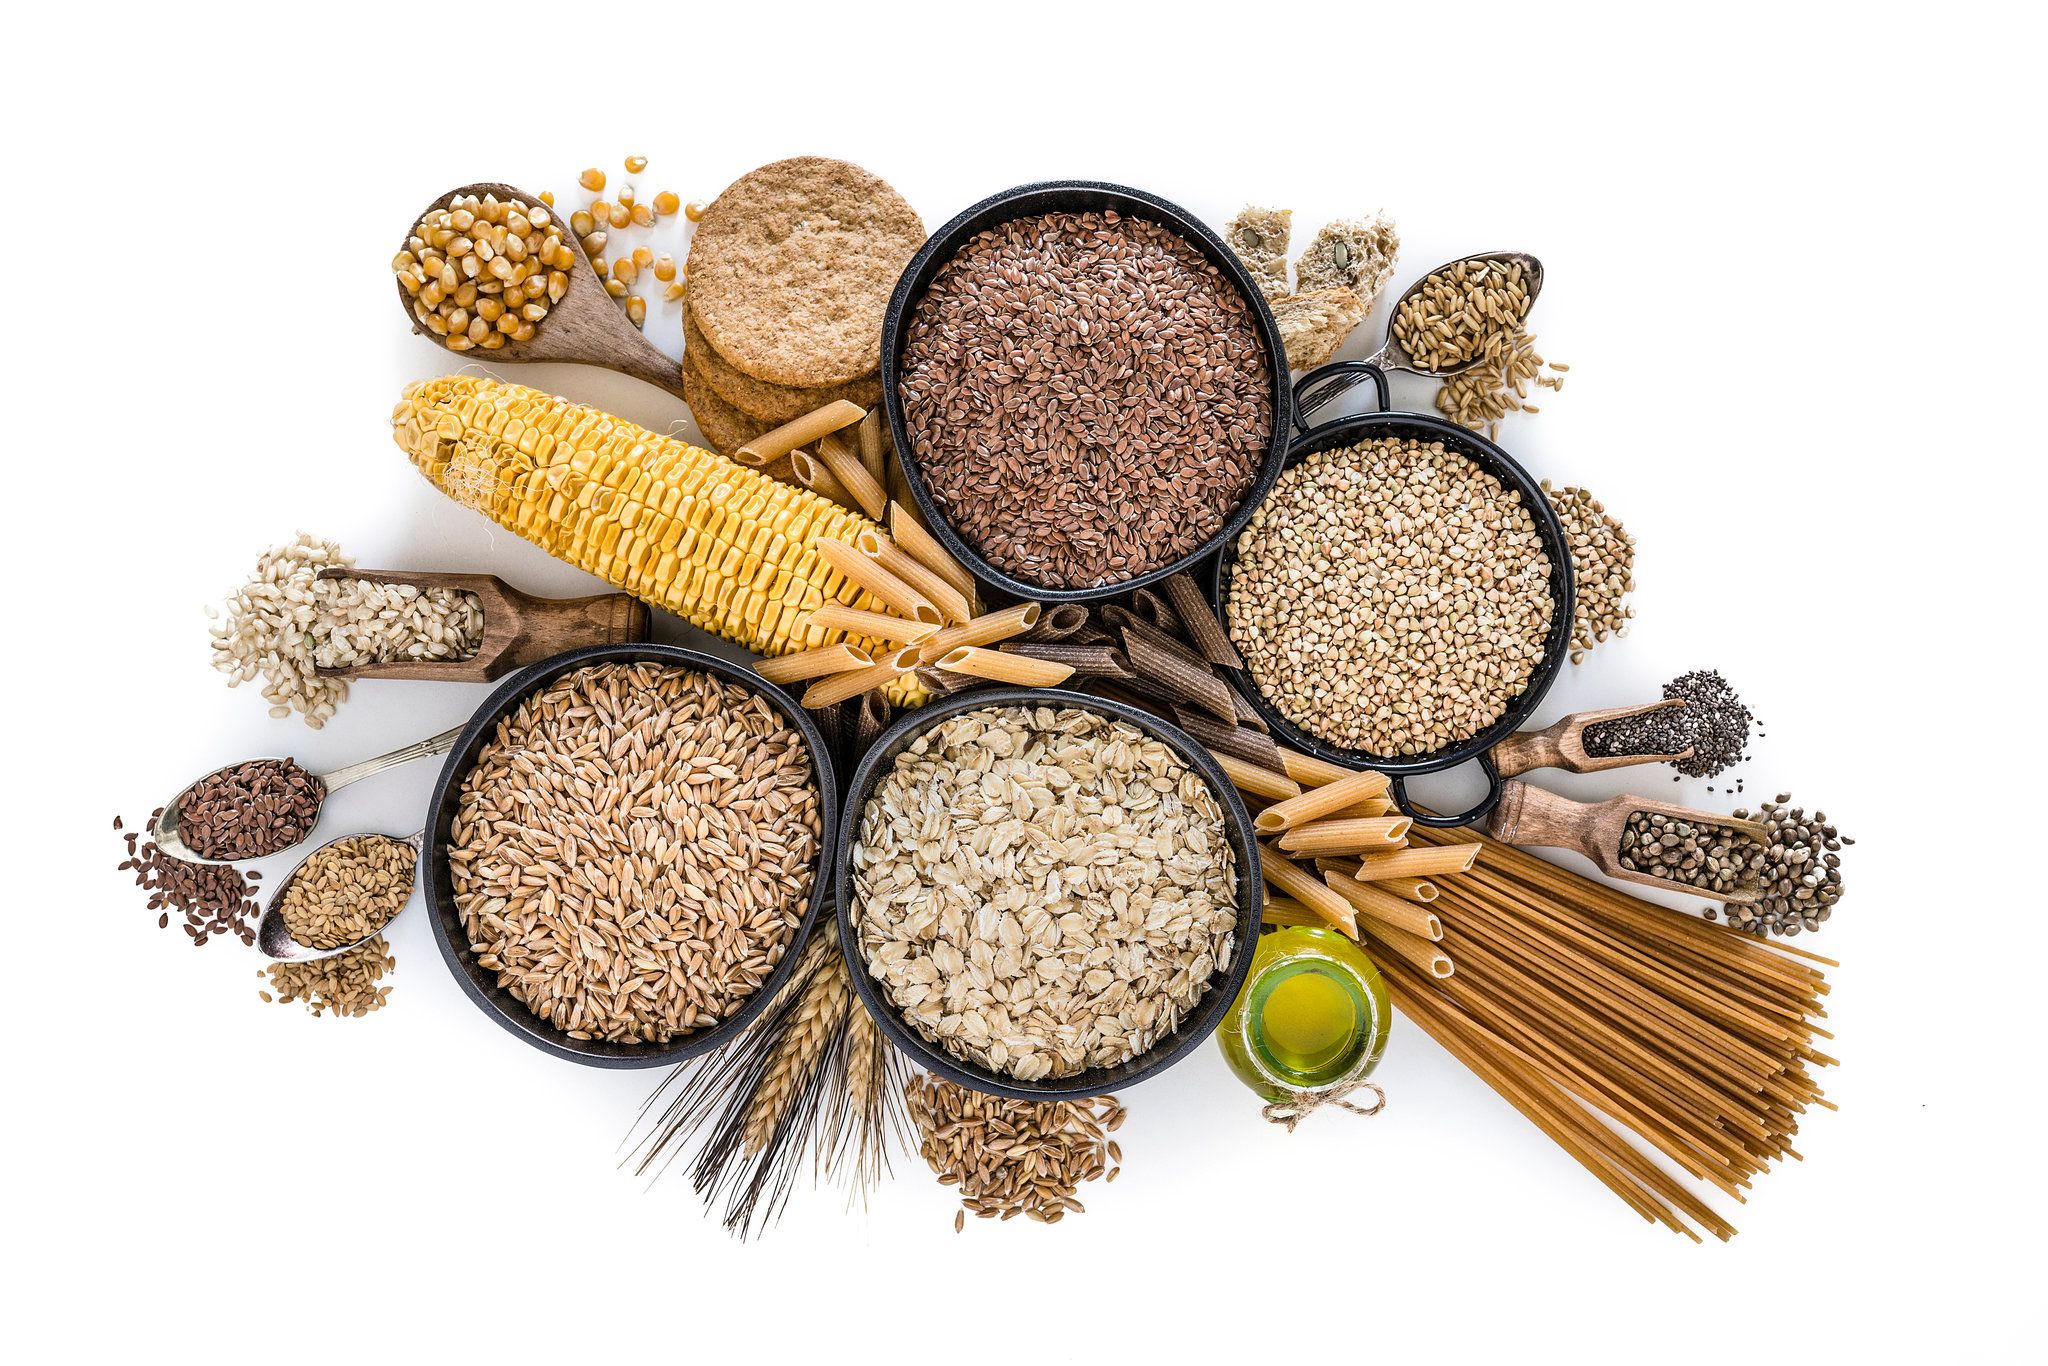 Whole Grains For Health